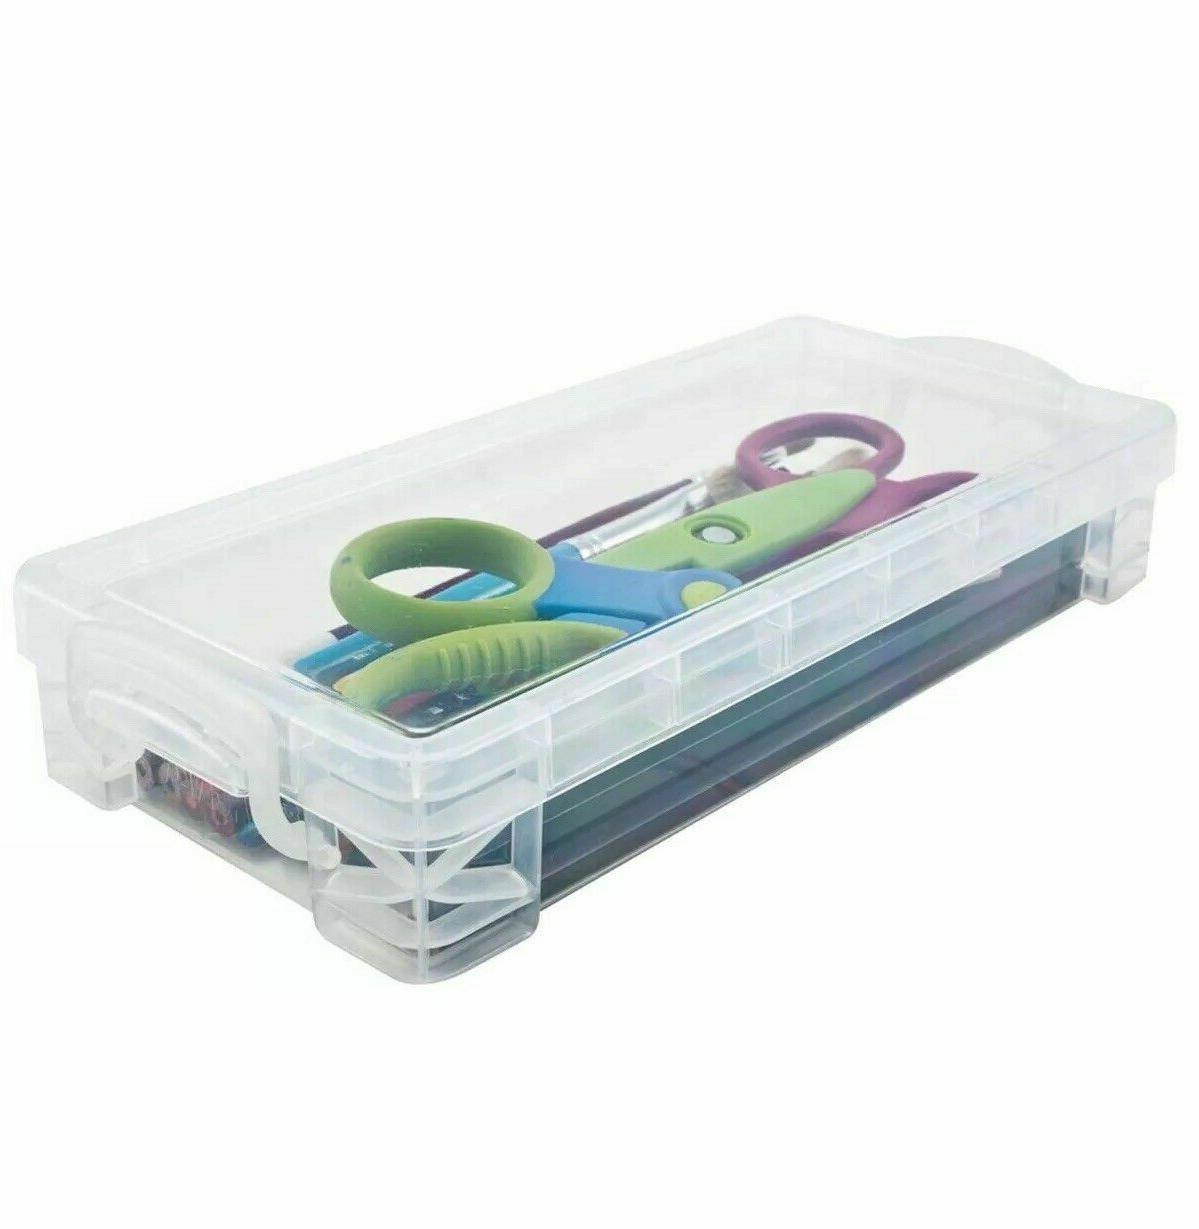 Plastic Box Kids Office Art Craft Organizer